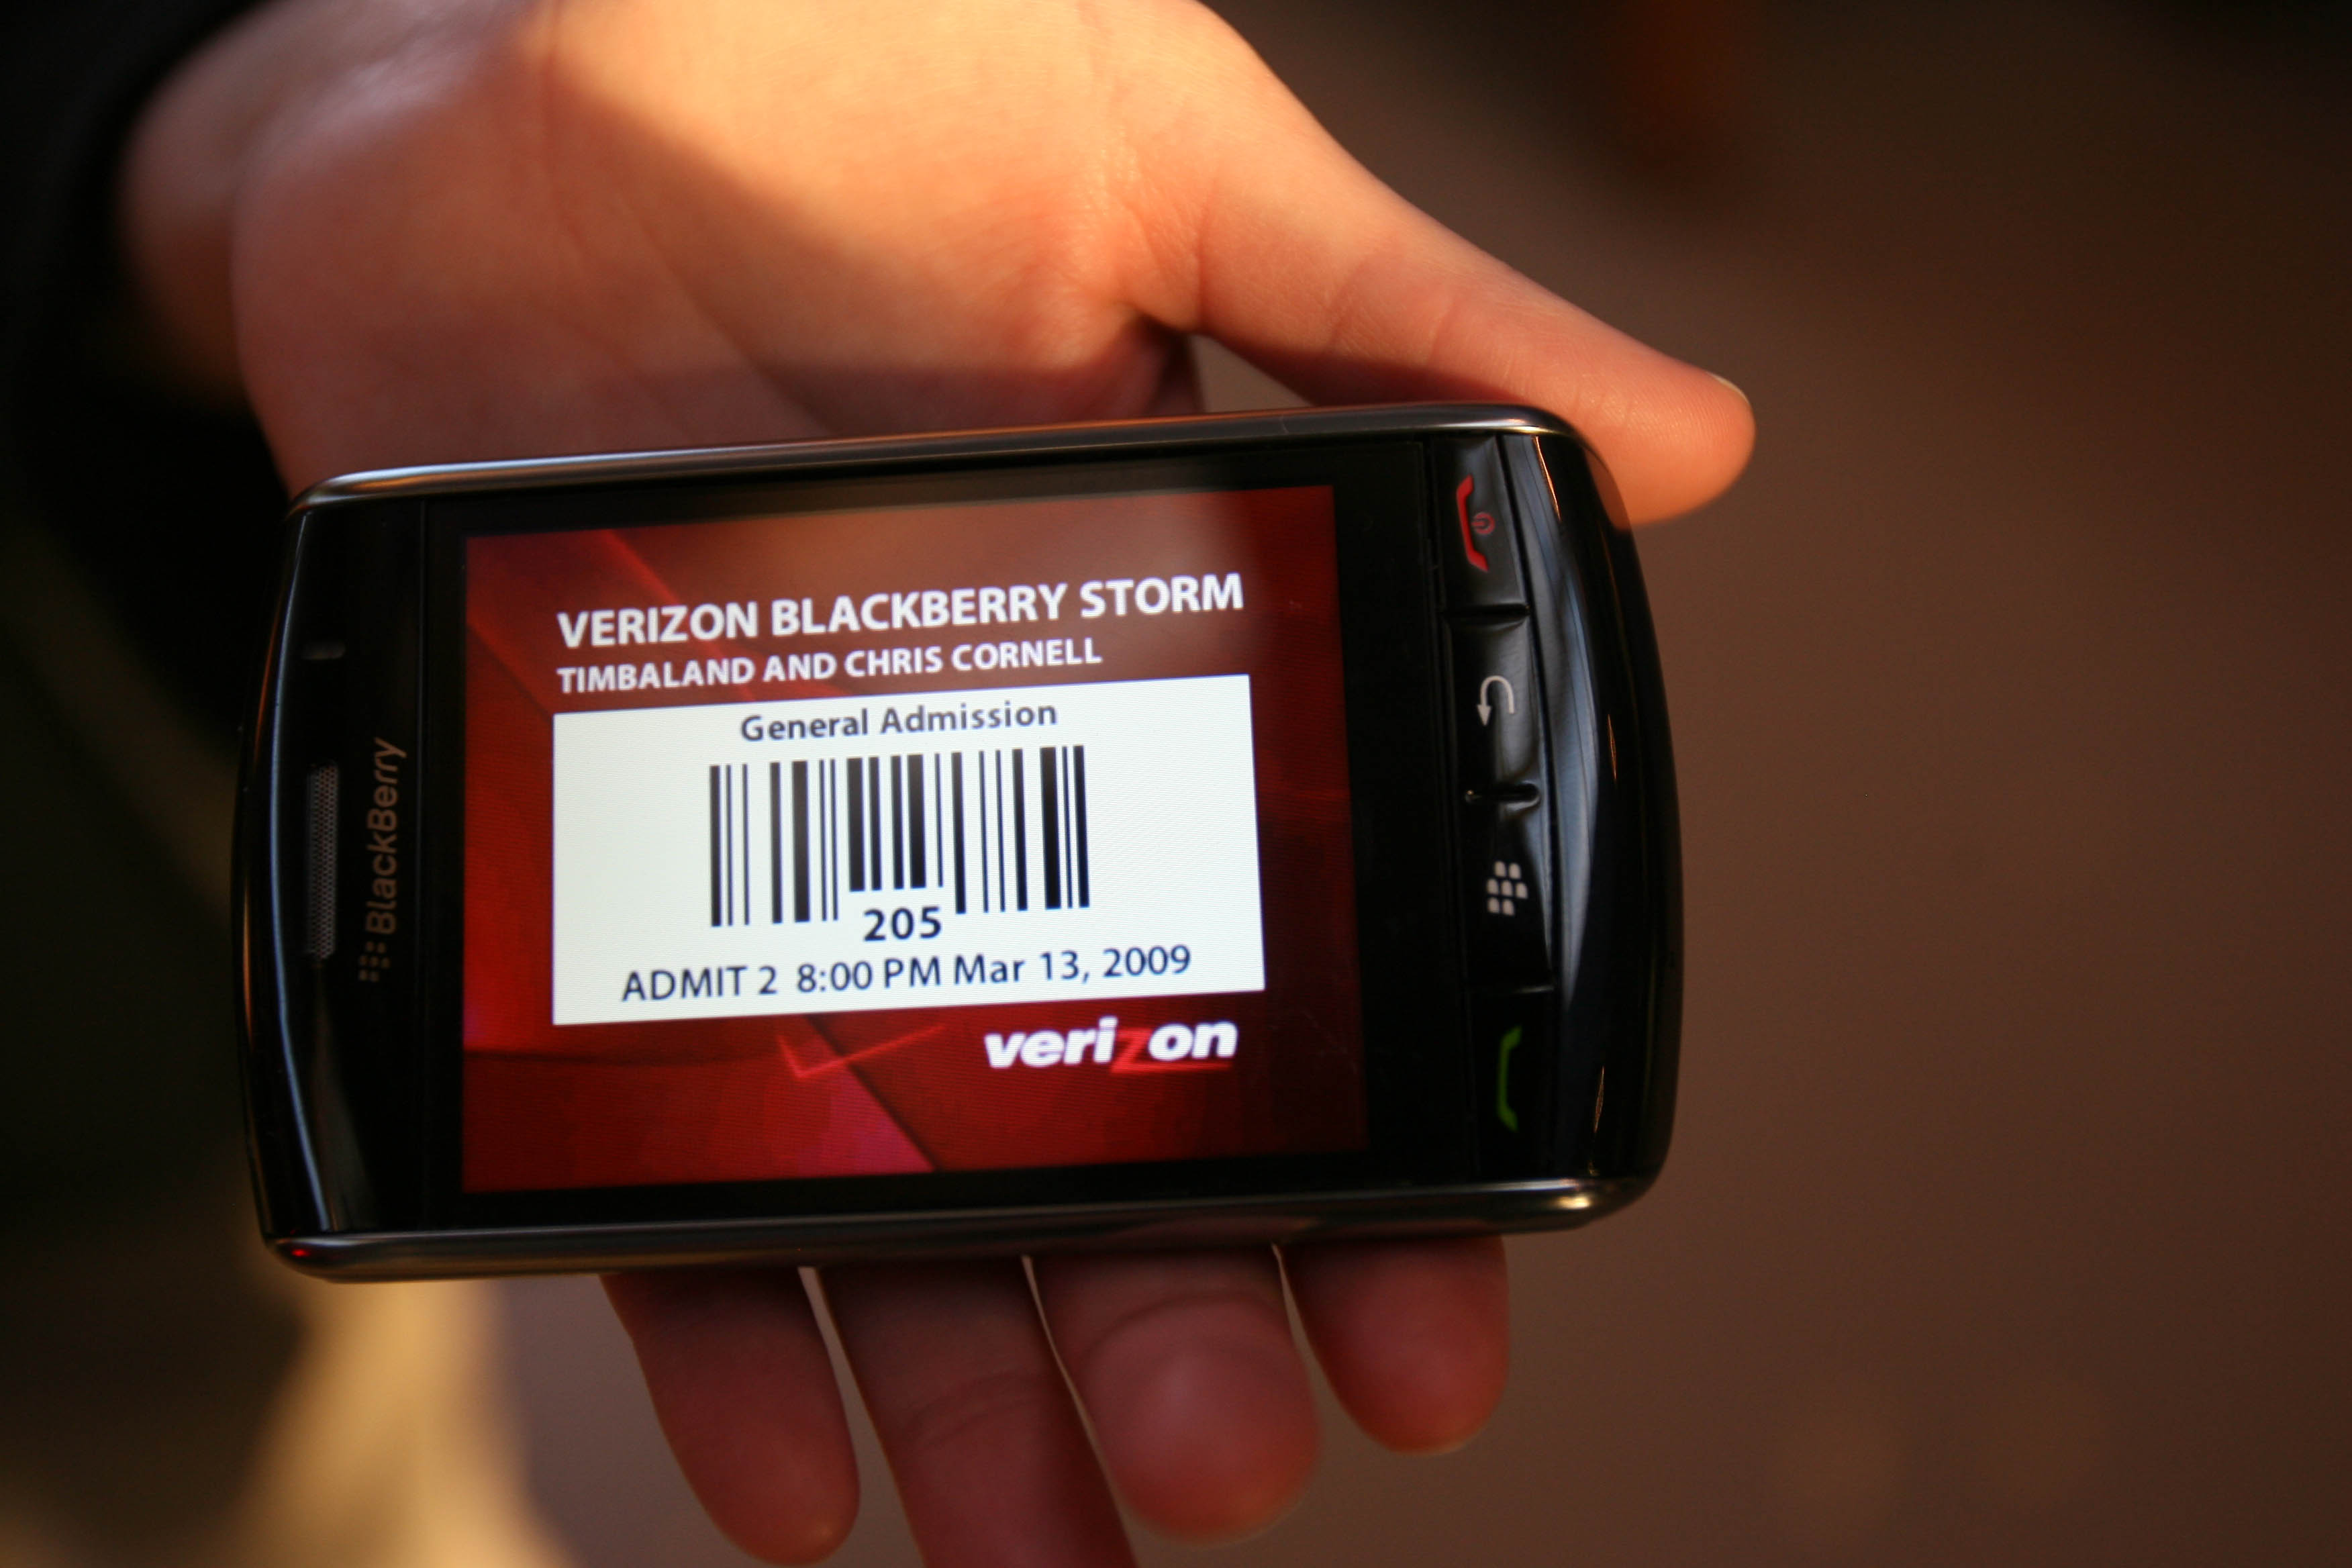 A Verizon Blackberry Storm mobile ticket appears on a a mobile device at a Verizon Wireless and Blackberry Storm event on March 13, 2009 in Chicago, Illinois.